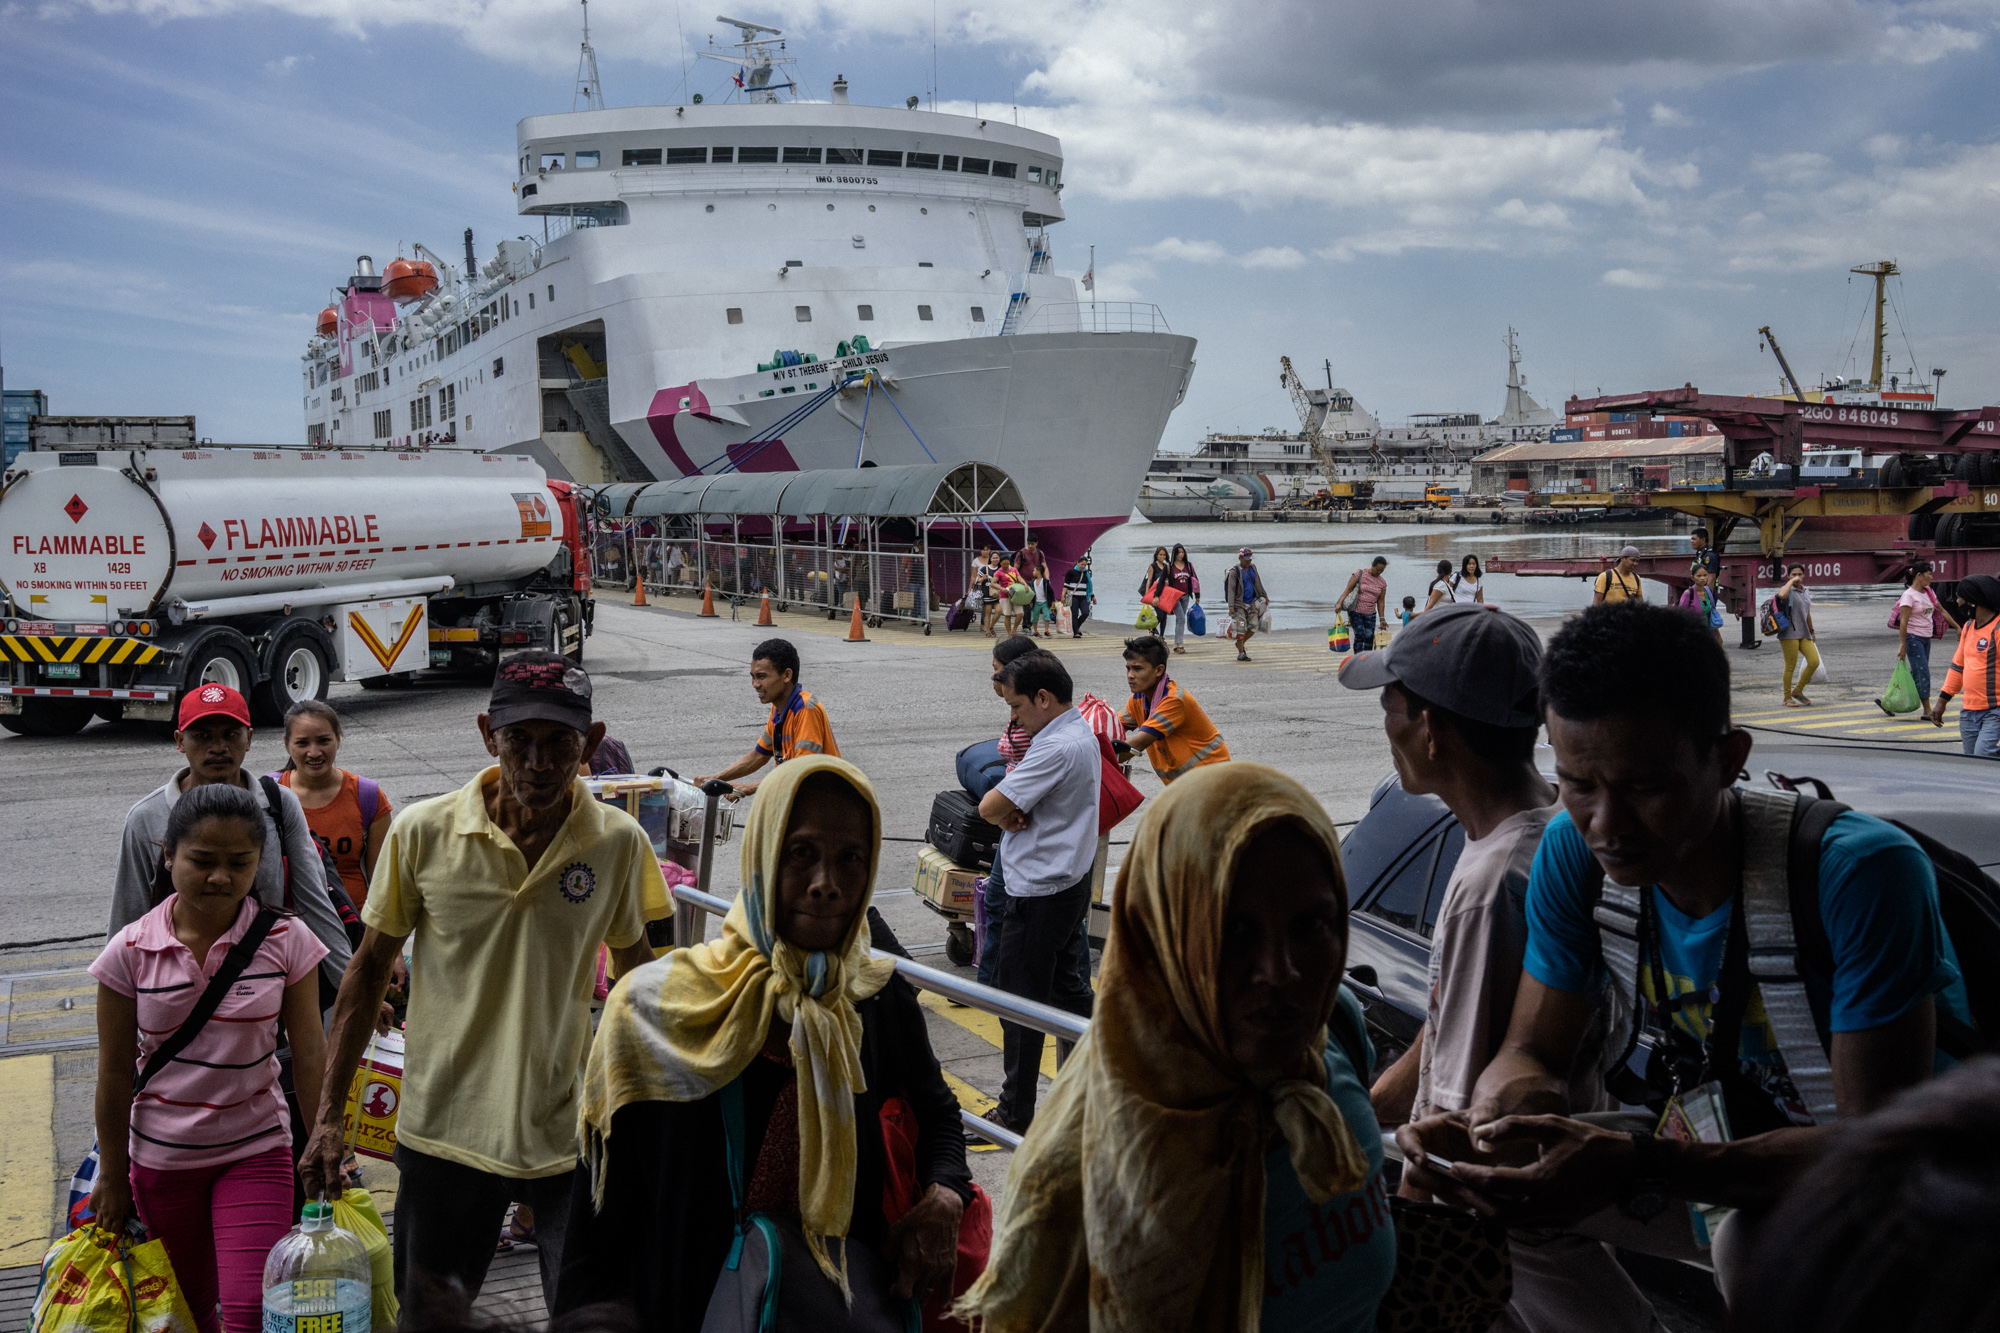 A boat arrives at the Manila port. Many girls on their way out of the province make their way through this boat. (Photo by Hannah Reyes Morales/GroundTruth)